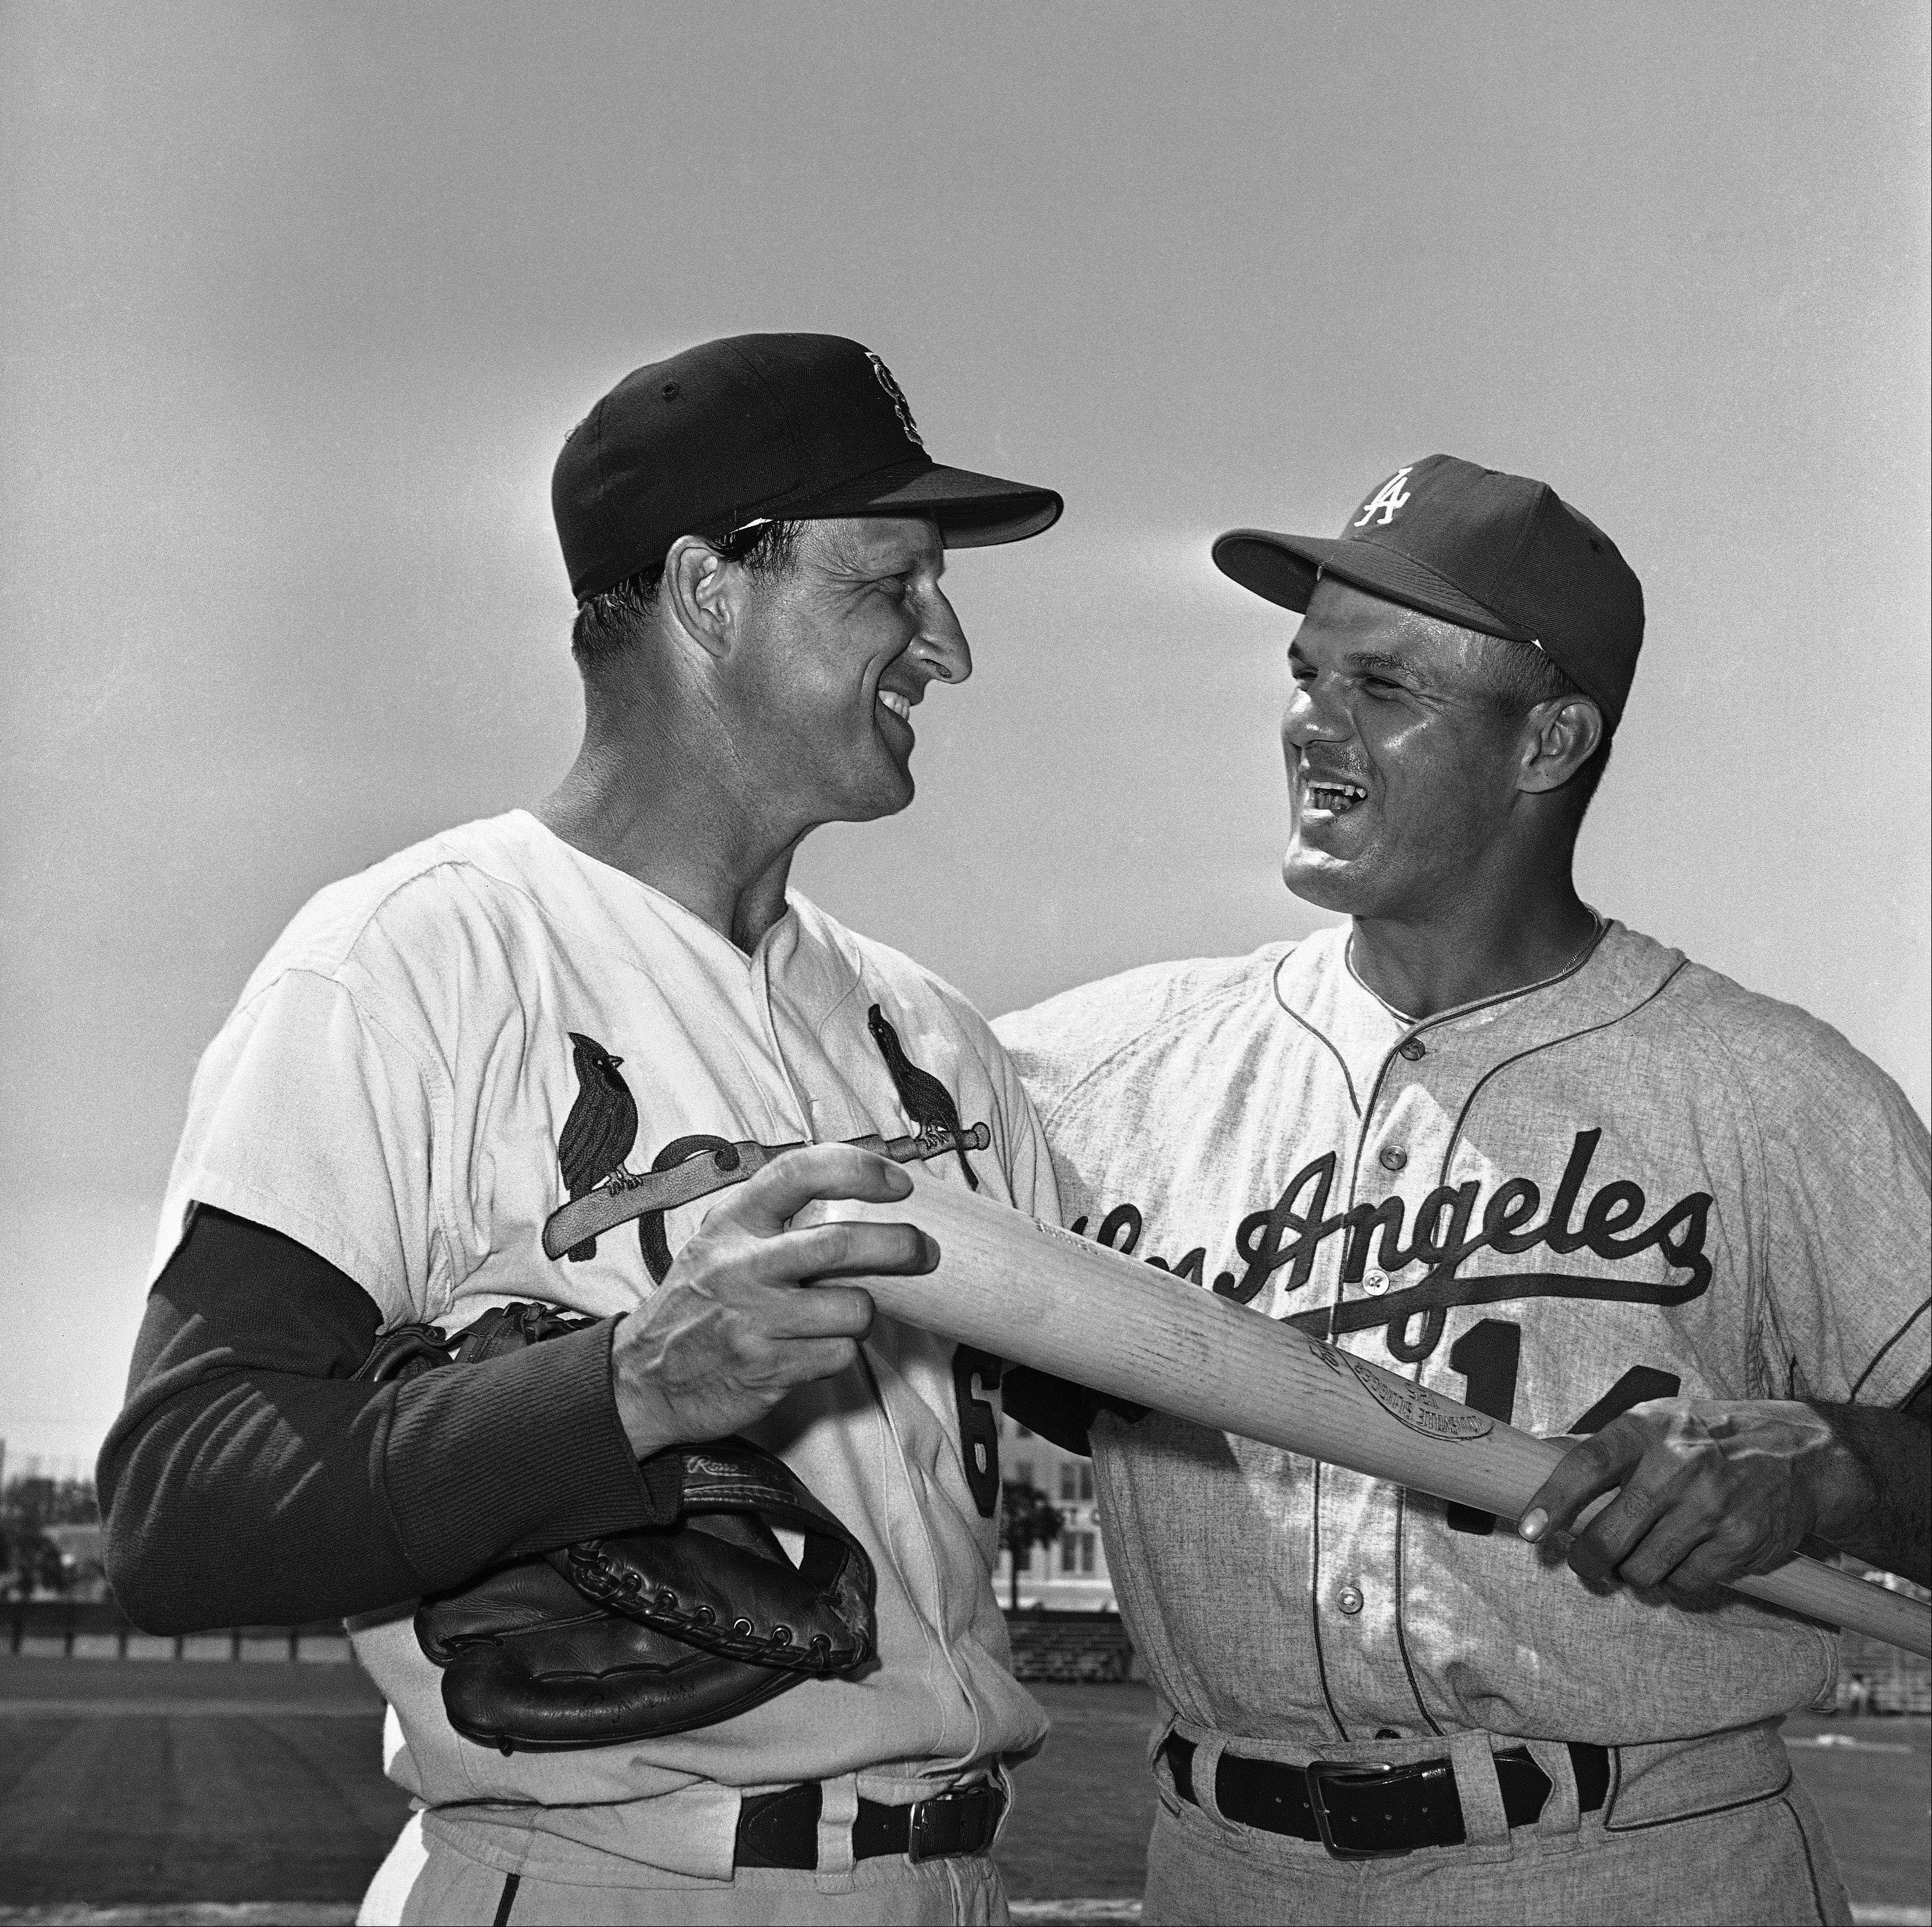 Stan Musial of the St. Louis Cardinals exchanges pleasantries with Bill Skowron of the Los Angeles Dodgers on March 13, 1963 in St. Petersburg before exhibition game. Skowron was traded from the New York Yankees for pitcher Stan Williams.